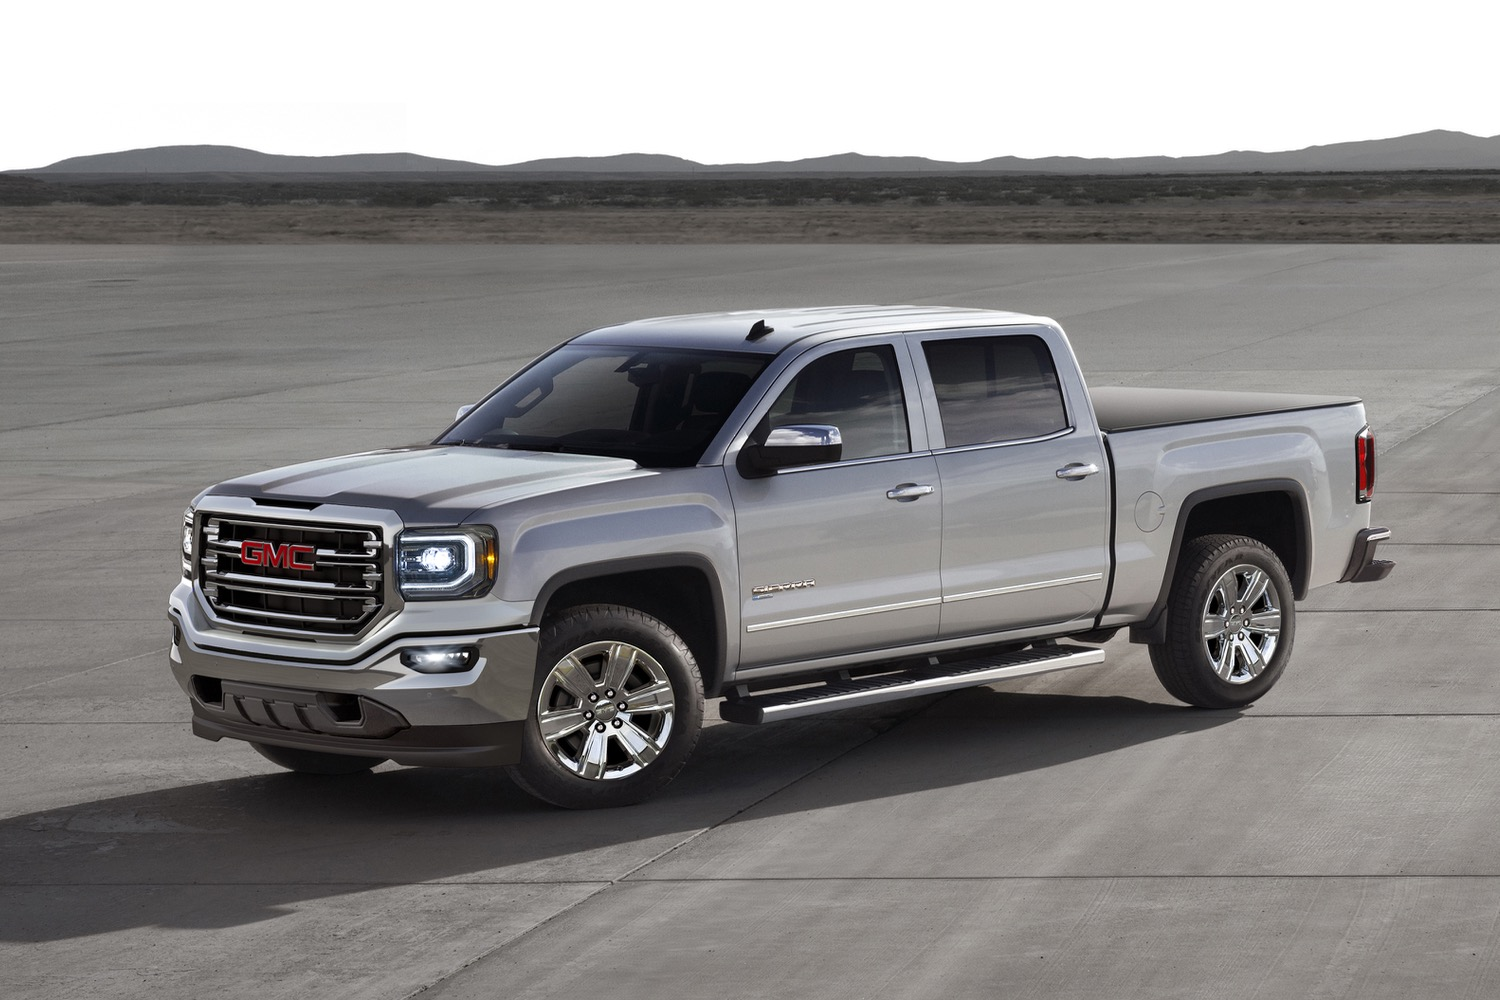 gm takes a step toward hybrid trucks with 2016 chevy silverado and gmc sierra eassist. Black Bedroom Furniture Sets. Home Design Ideas